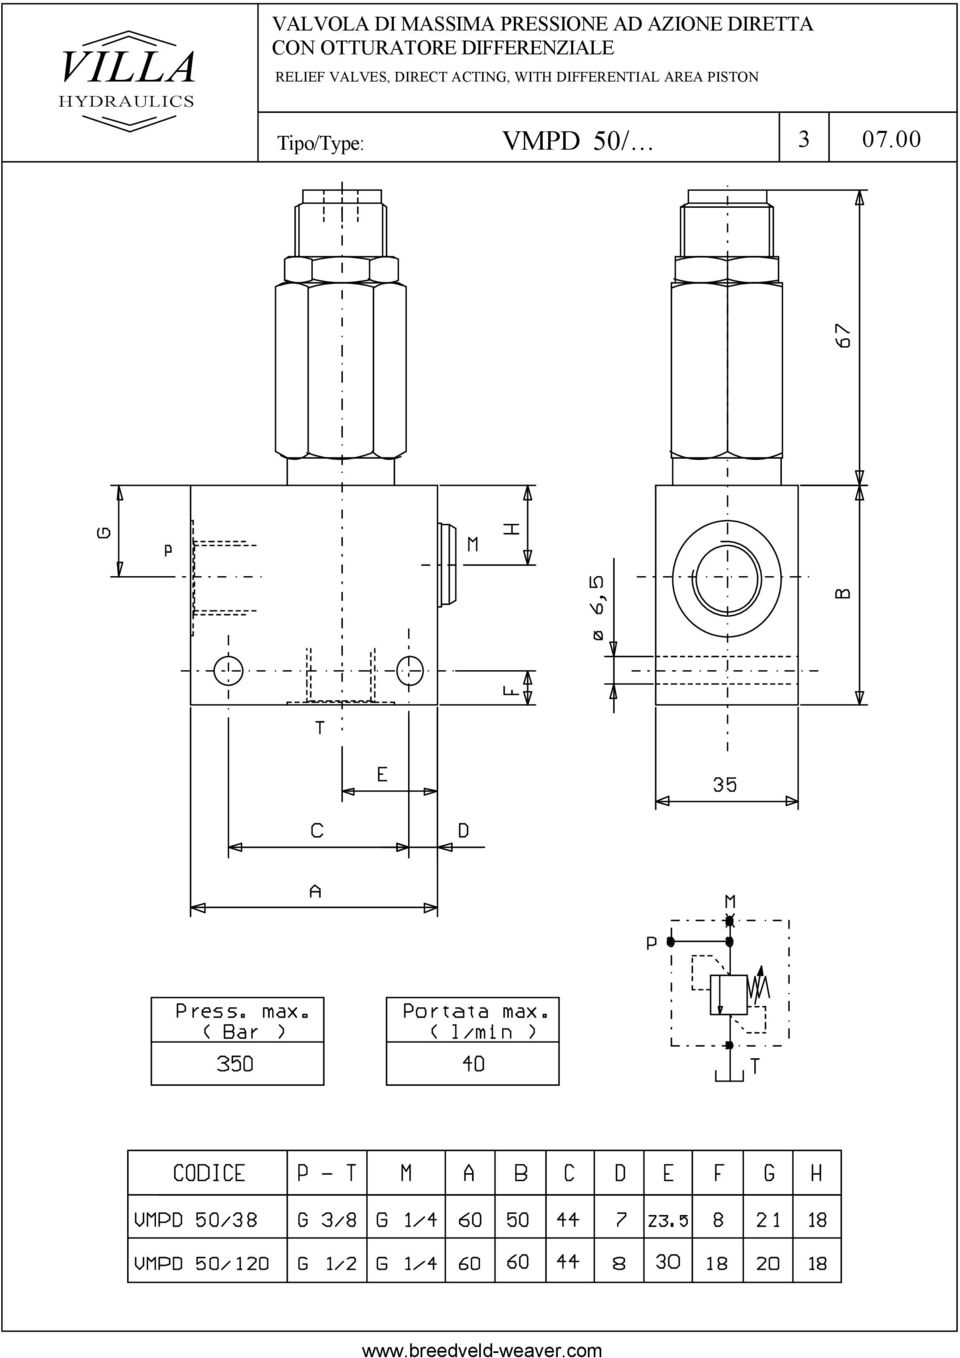 RELIEF VALVES, DIRECT ACTING, WITH